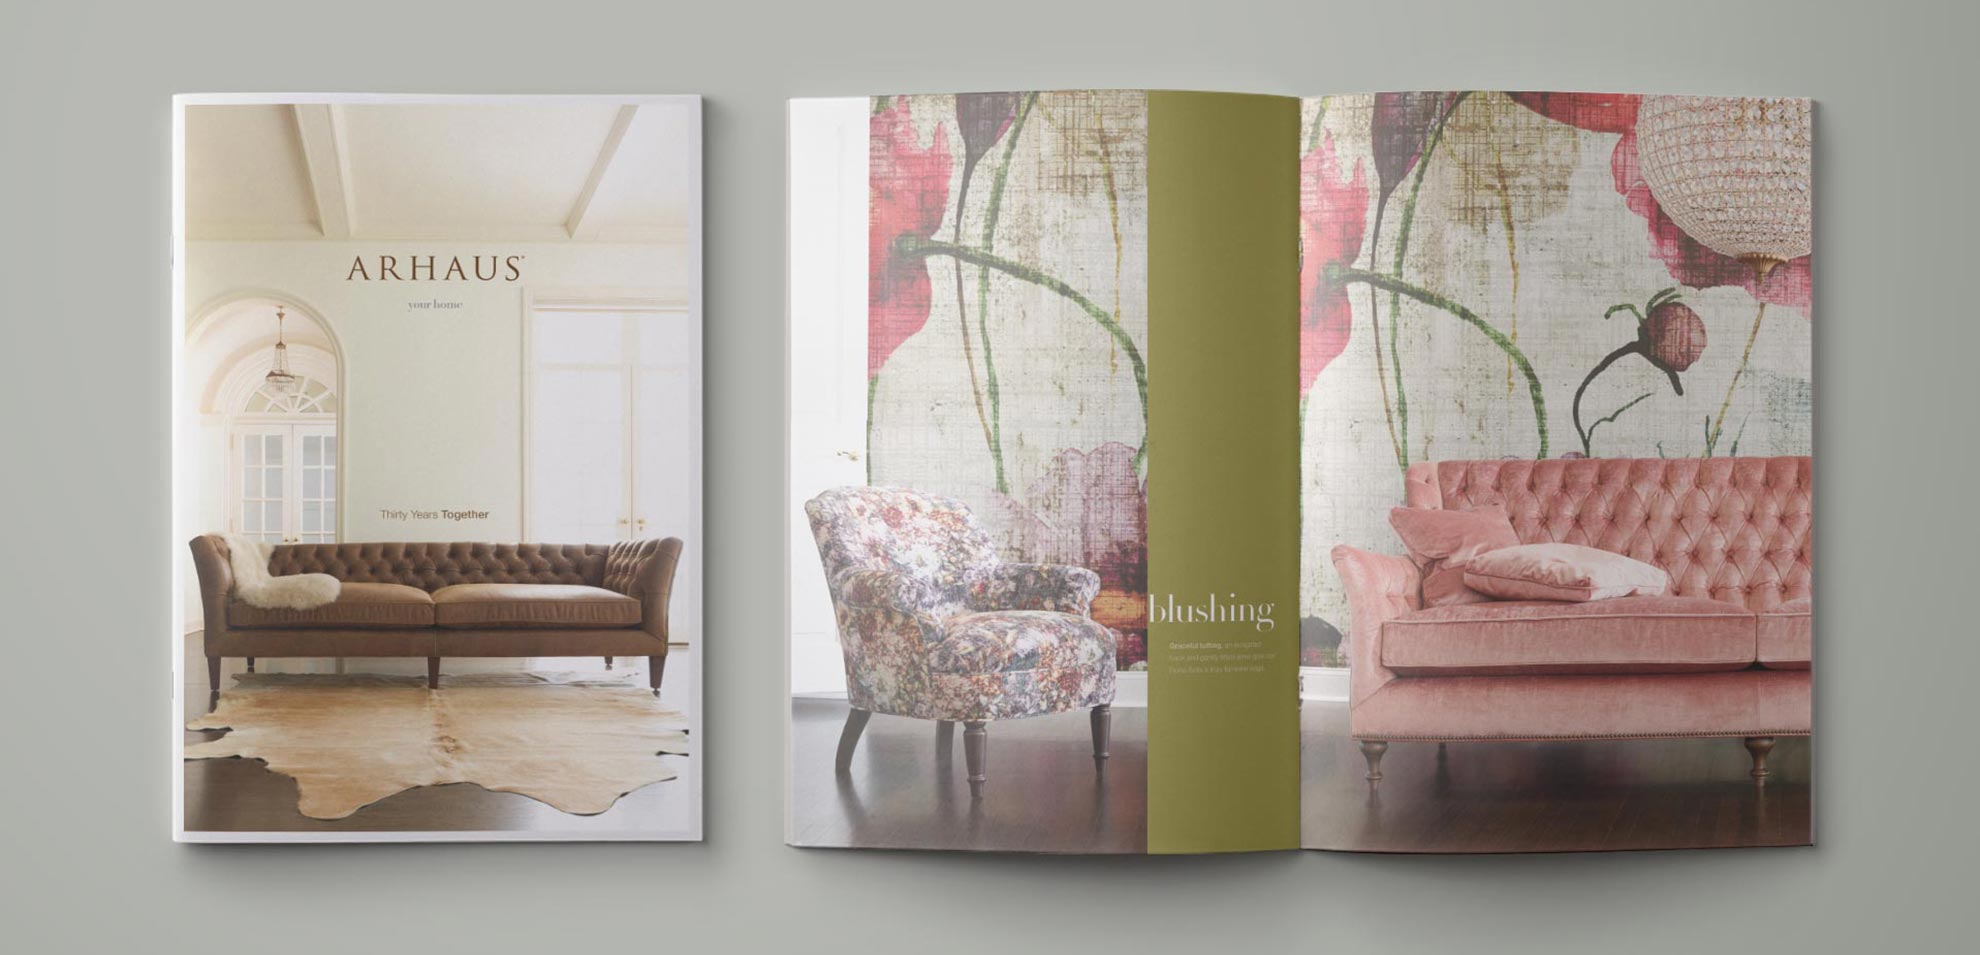 Arhaus Home Goods and Furniture Catalog Spread